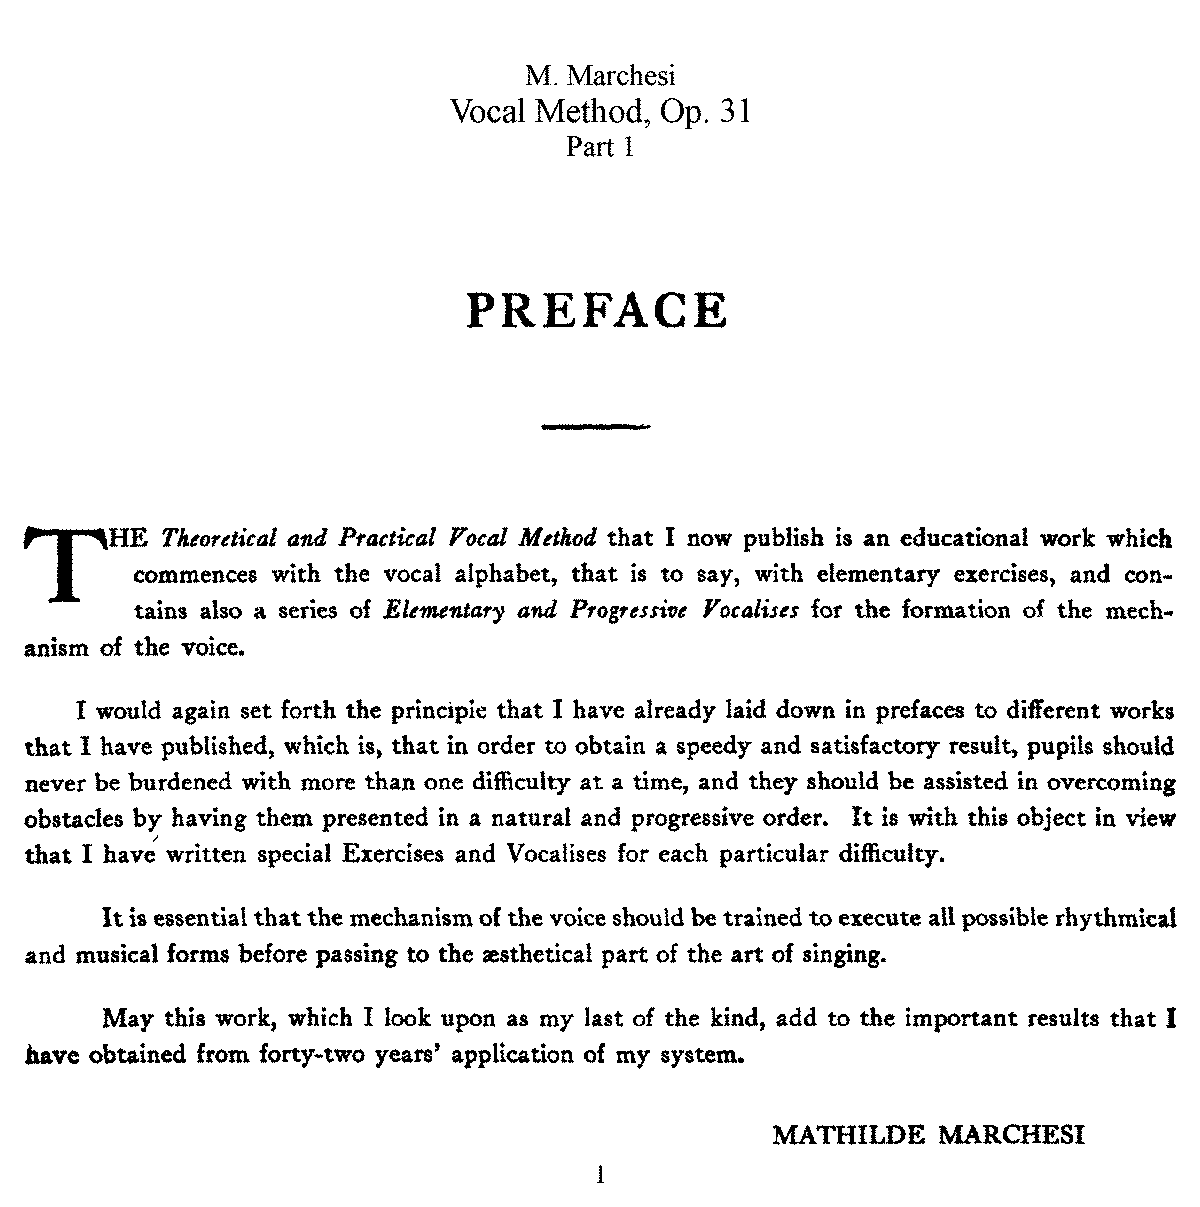 PMLP64165-Marchesi, Mathilde - Theoretical and Practical Vocal Method, Op. 31.pdf